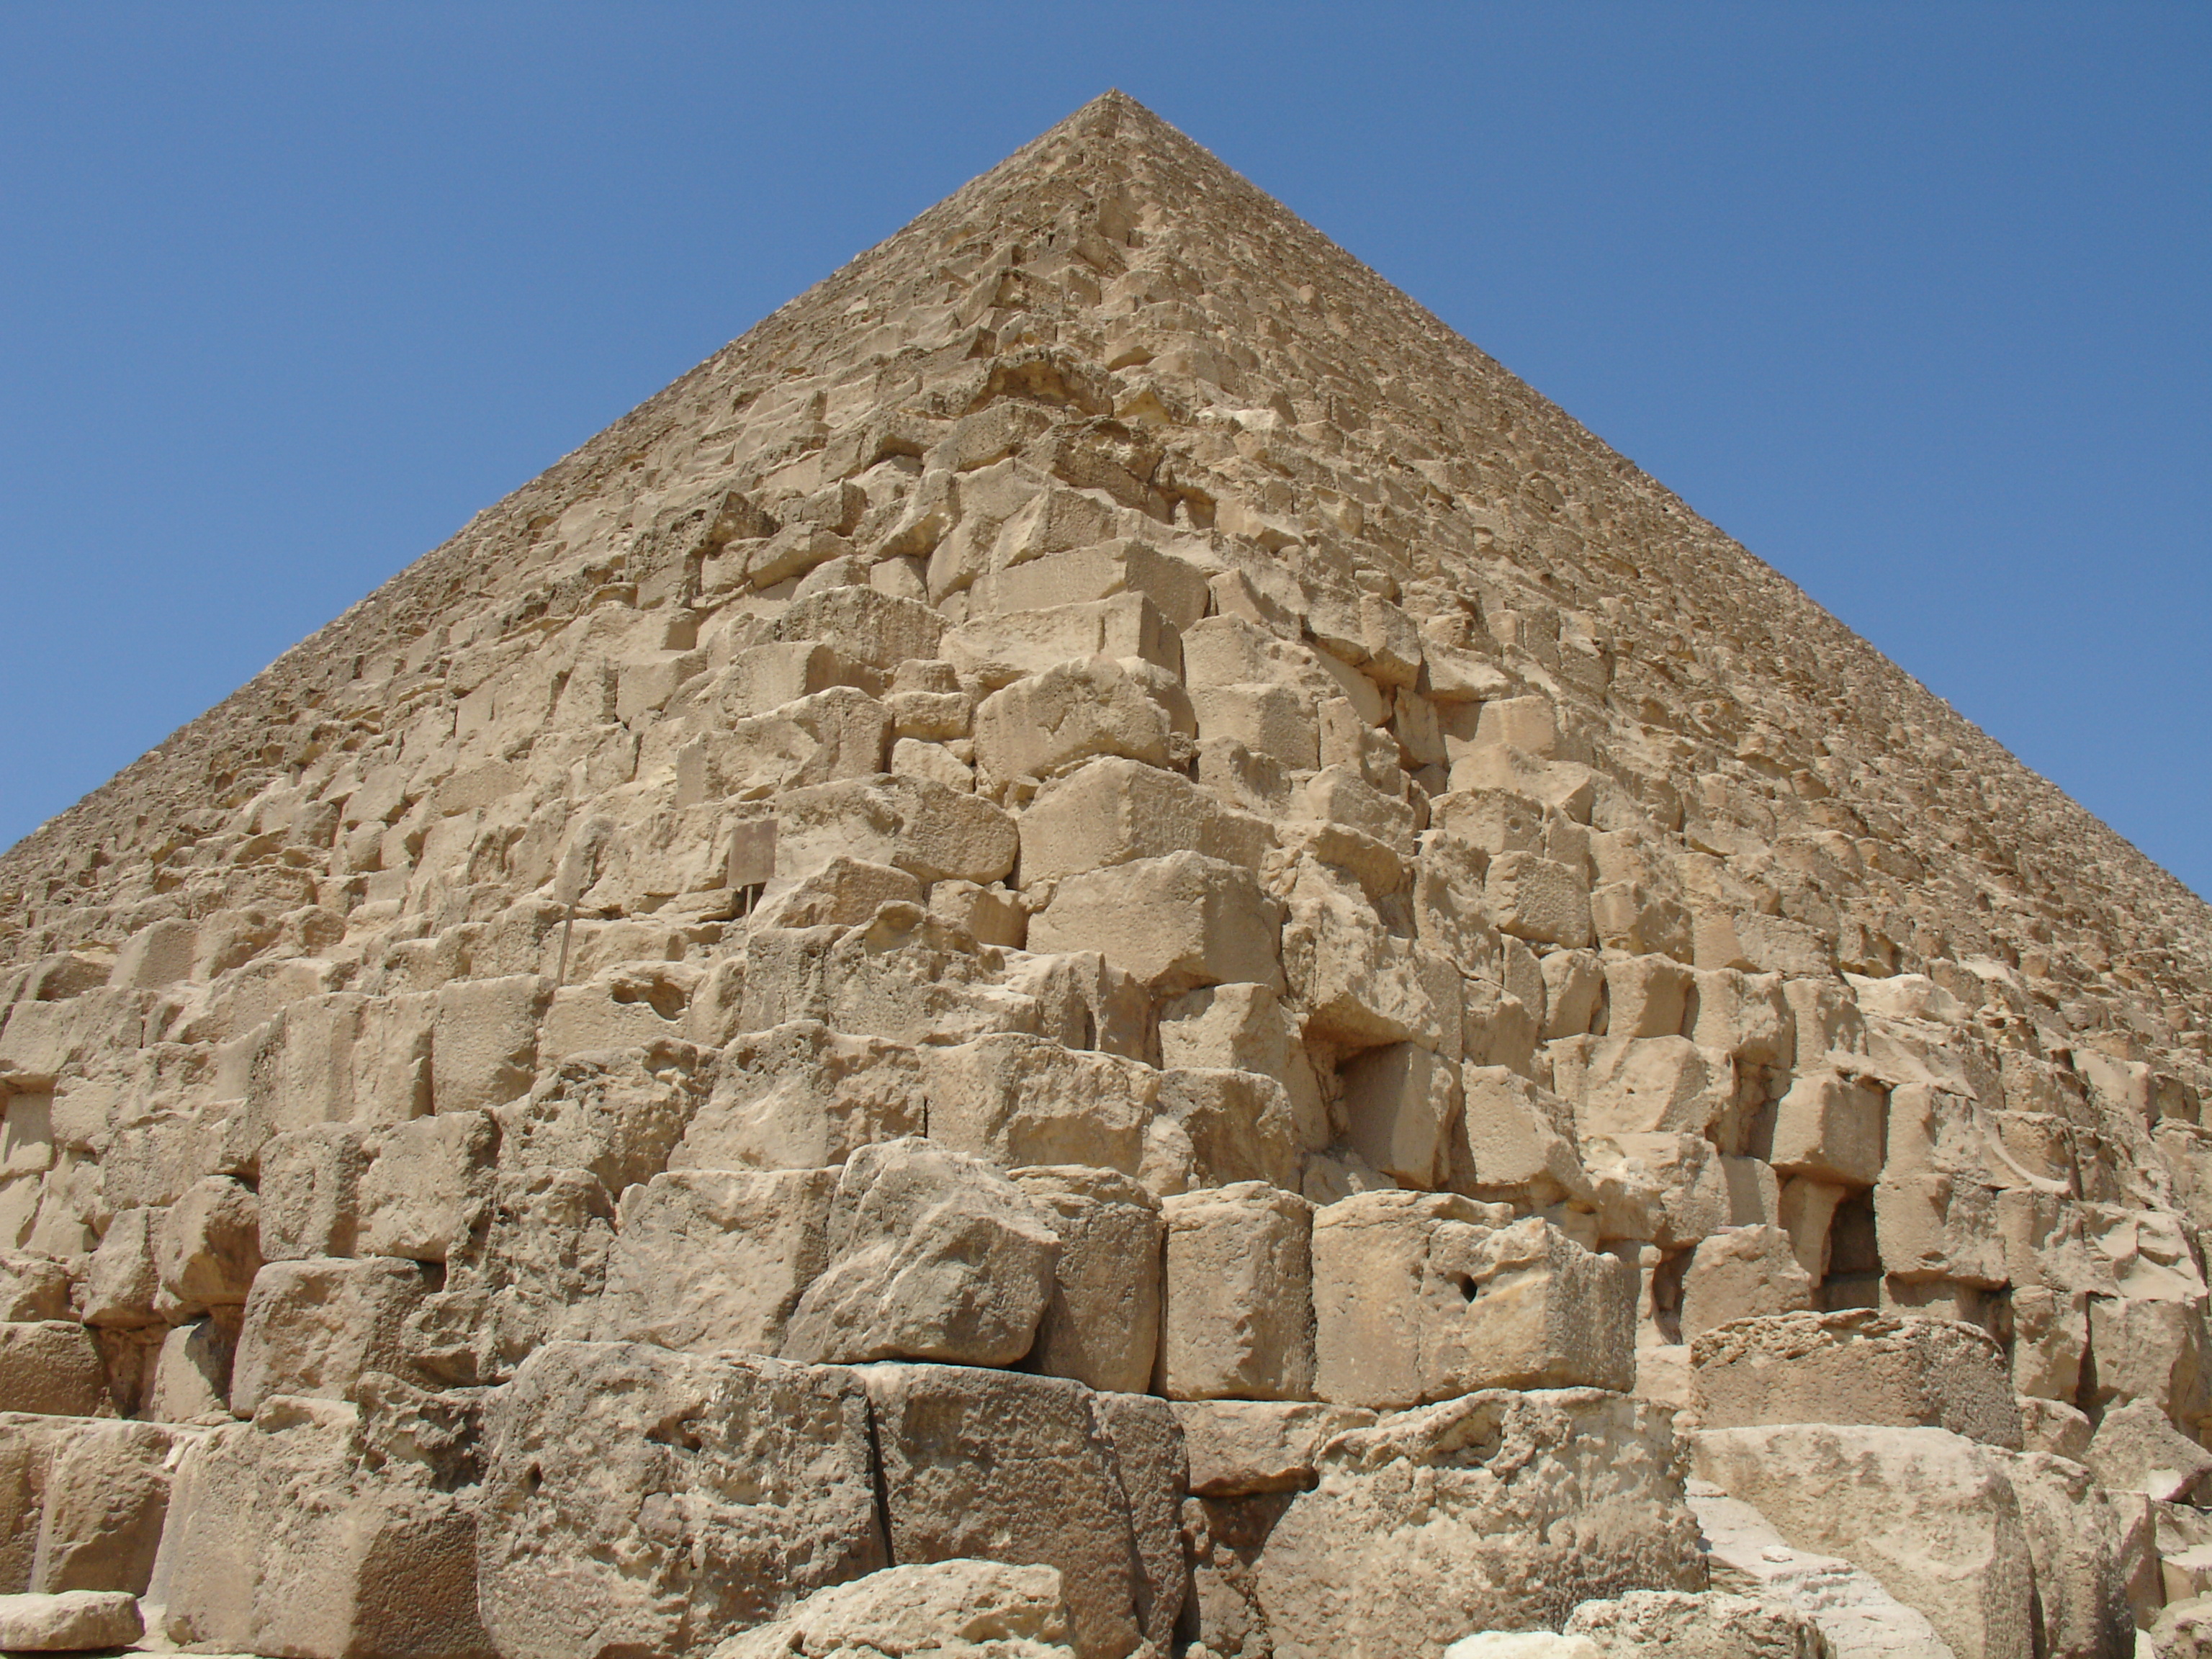 https://upload.wikimedia.org/wikipedia/commons/5/59/Great_Pyramid_of_Giza_edge.jpg